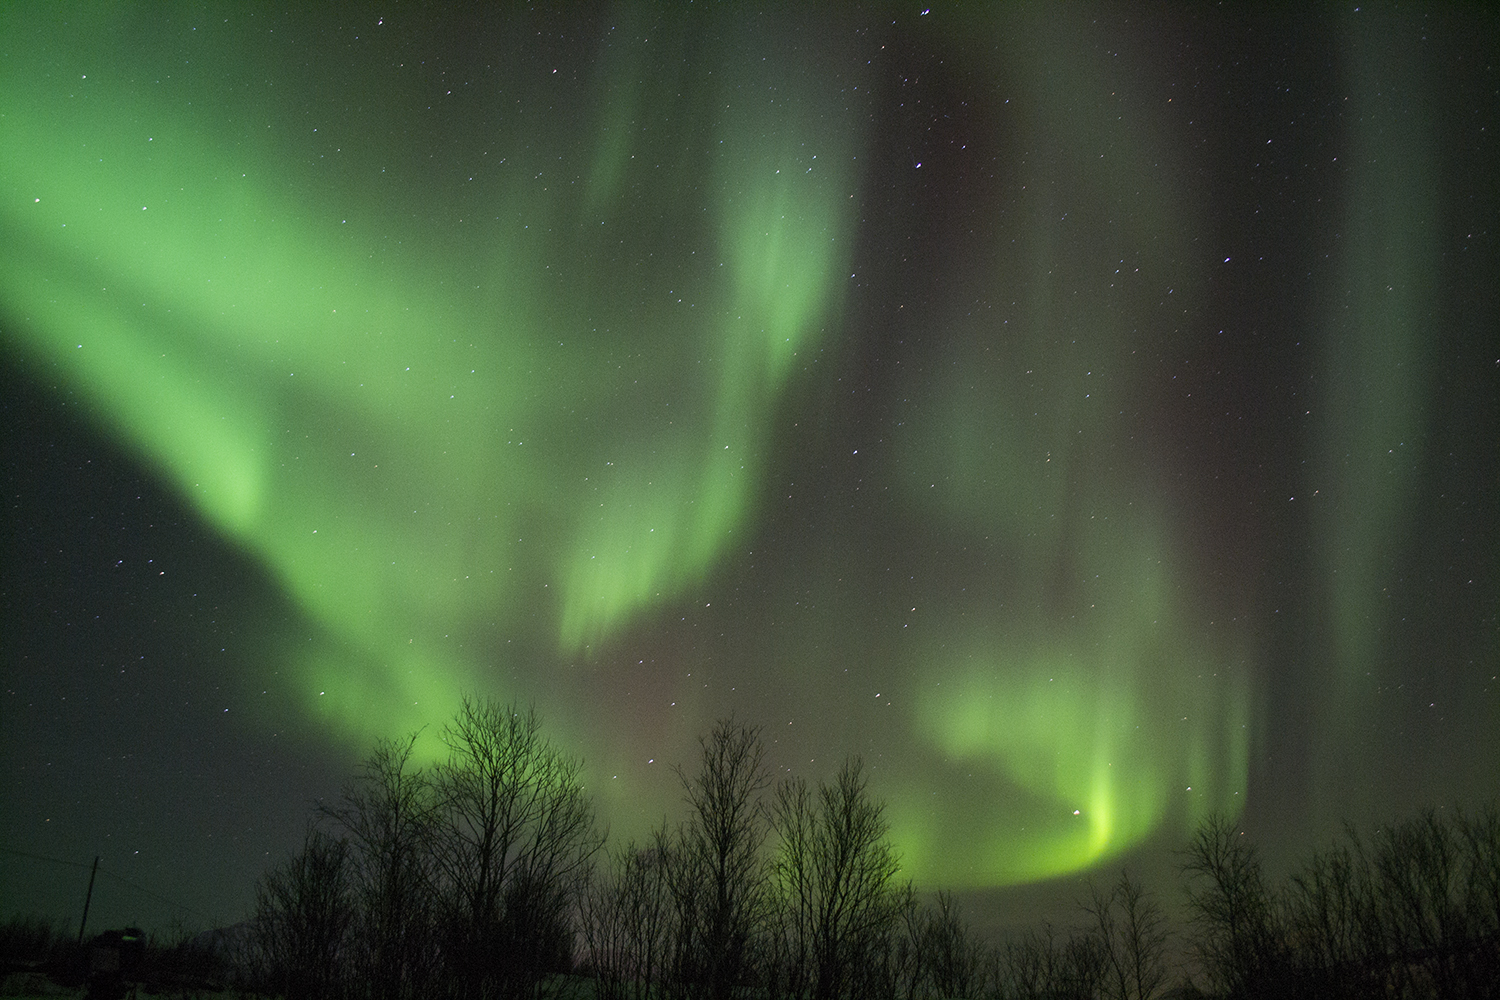 chasing the northern lights in Tromso